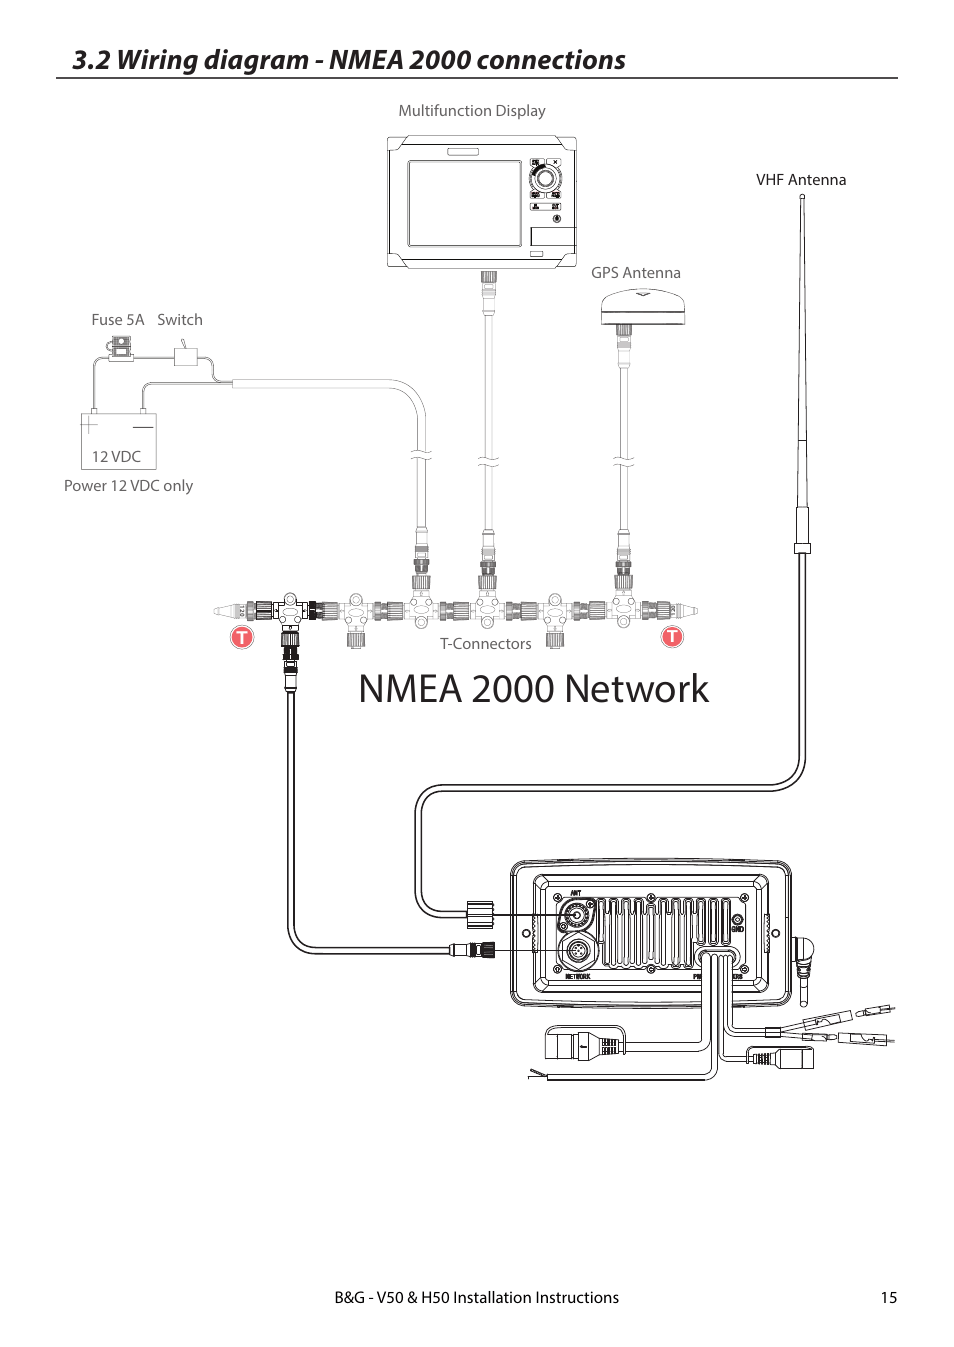 medium resolution of 2 wiring diagram nmea 2000 connections nmea 2000 network vhf antenna link8 vhf b g h50 wireless vhf handset user manual page 15 22